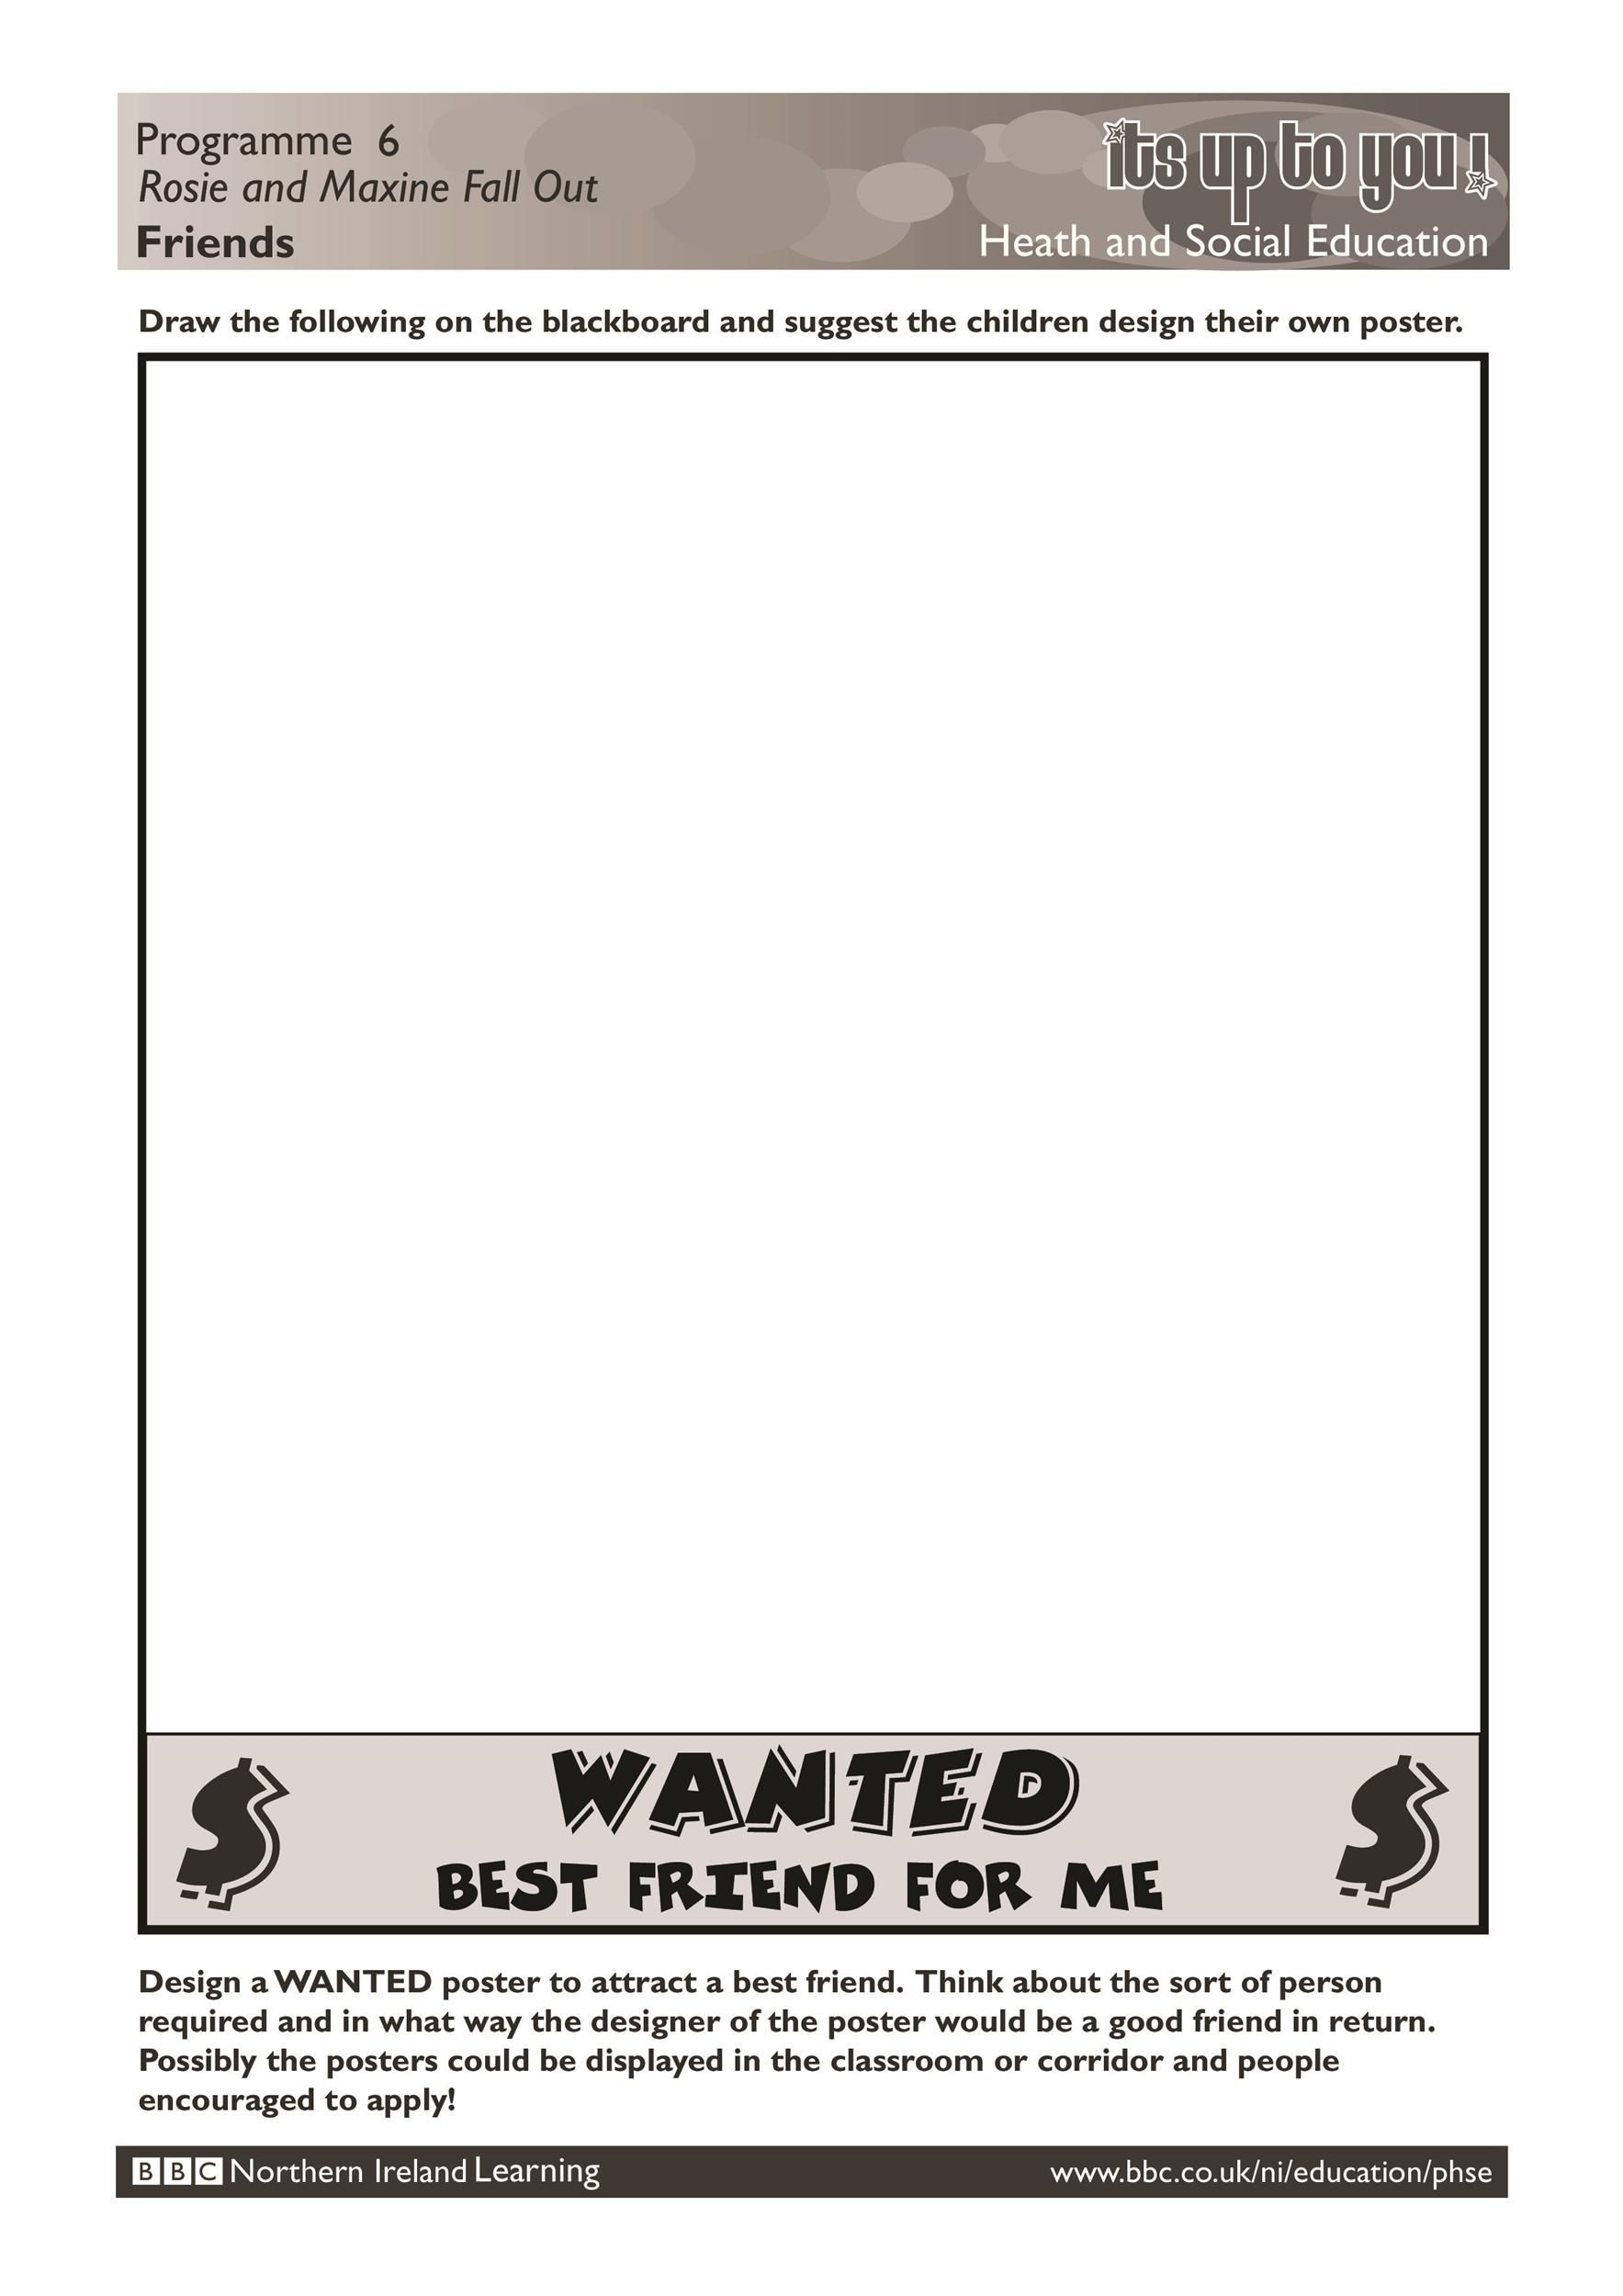 006 Unusual Wanted Poster Template Pdf Idea  Free CharacterFull